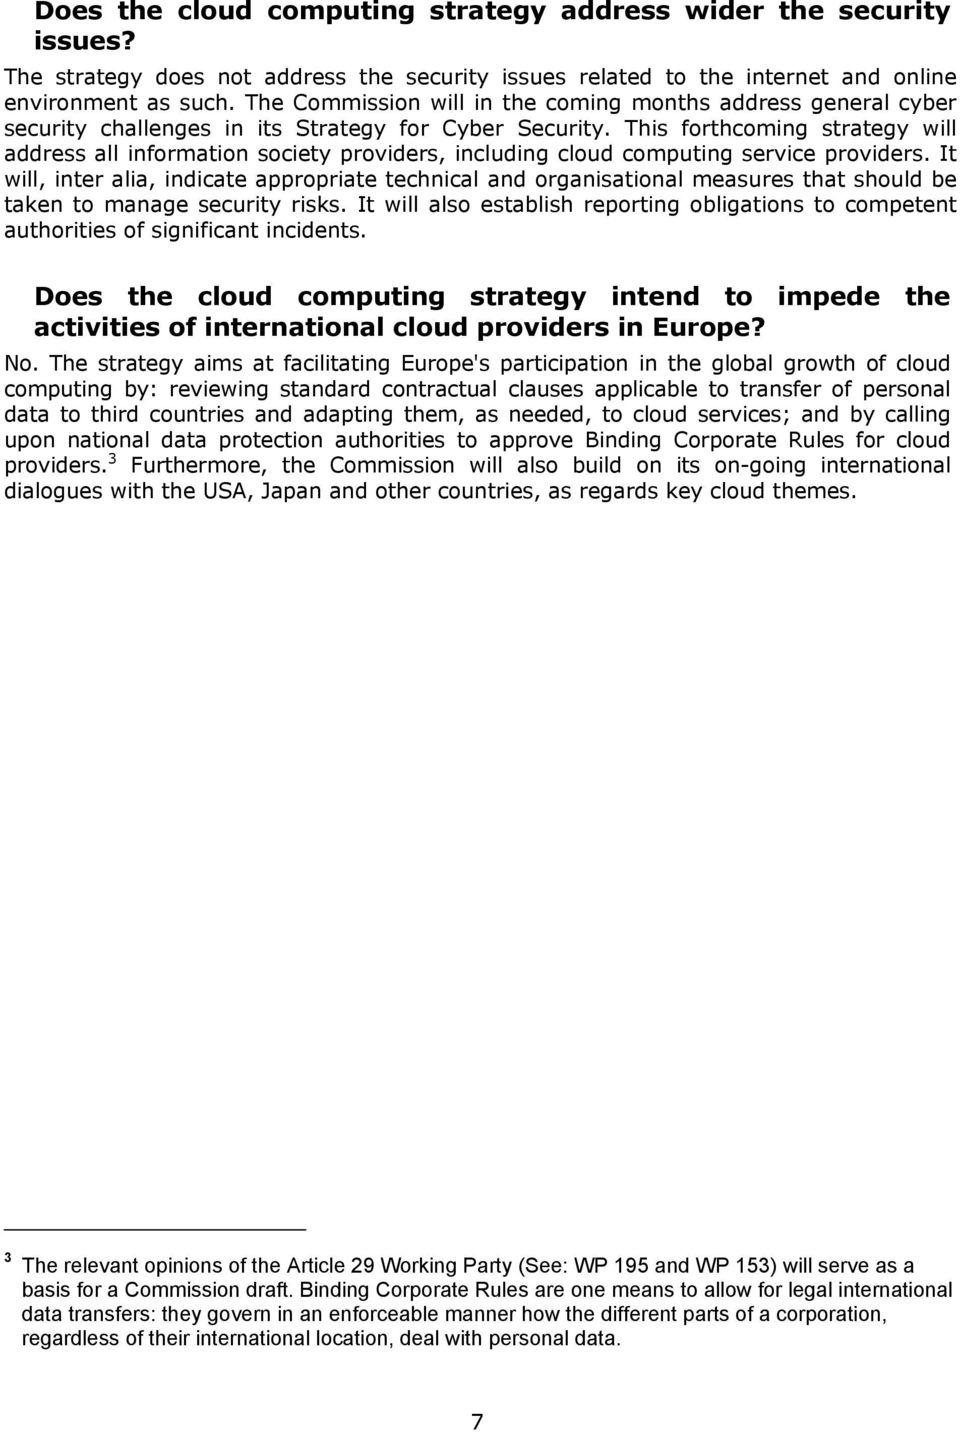 This forthcoming strategy will address all information society providers, including cloud computing service providers.